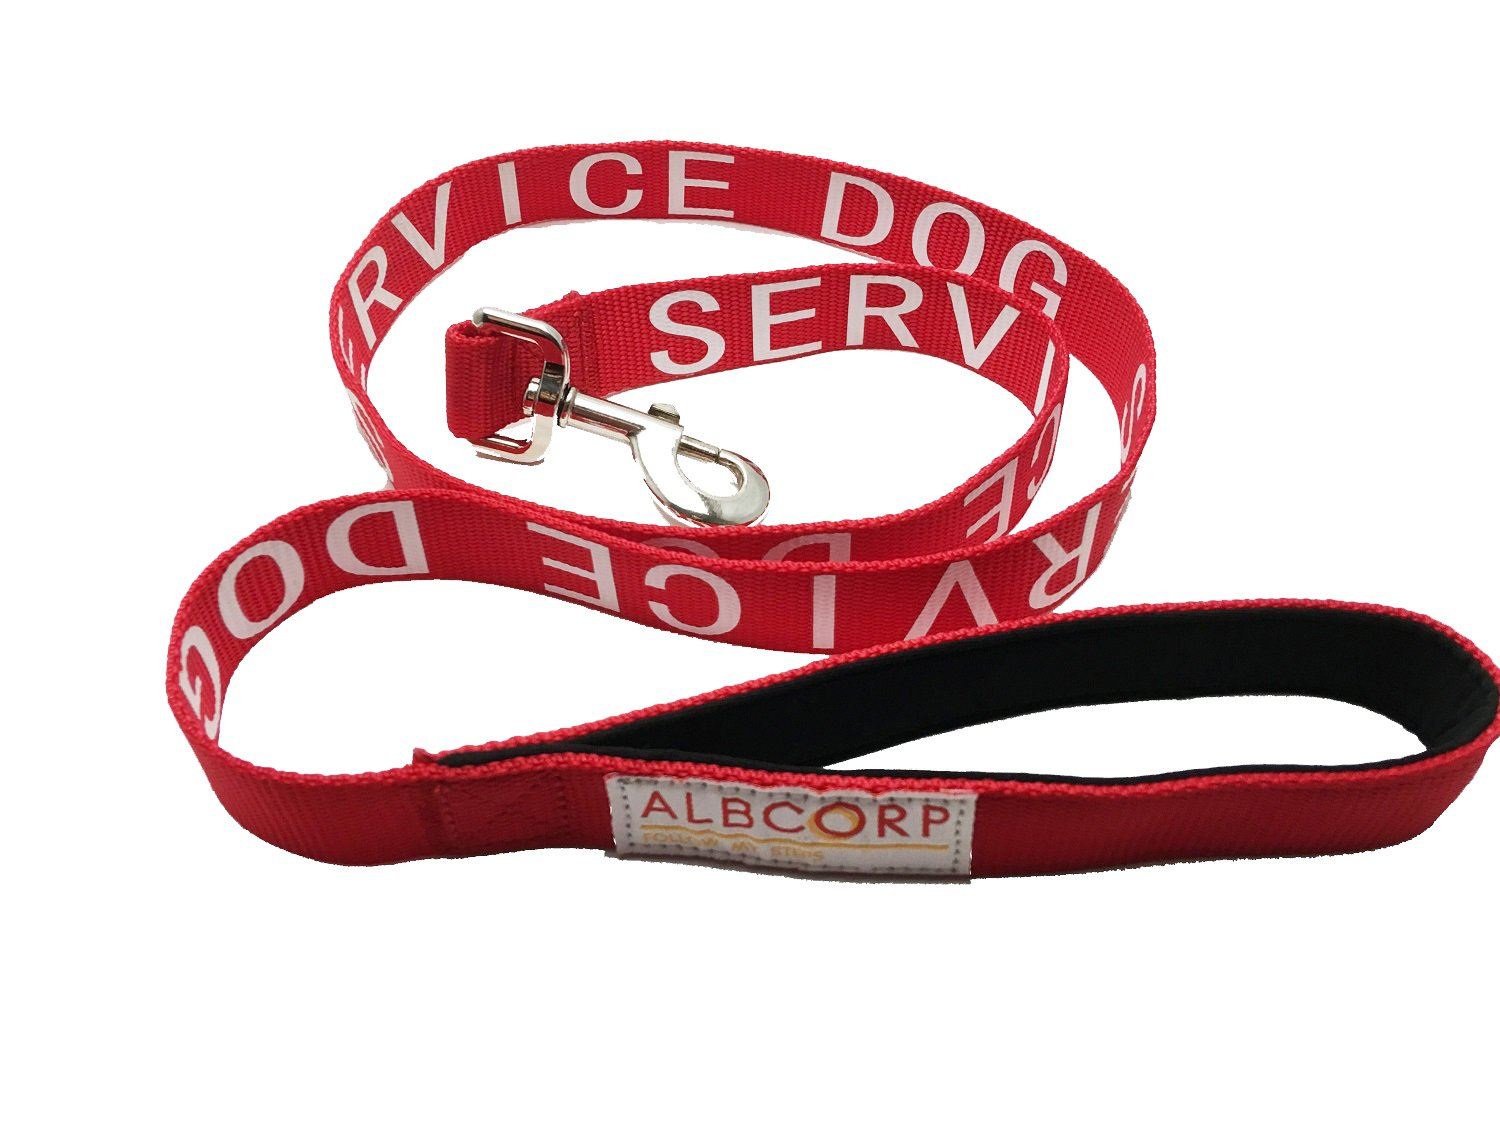 Albcorp Service Dog Leash with Padded Neoprene Handle and Reflective Silk-Screen Print, 4 Foot, Red